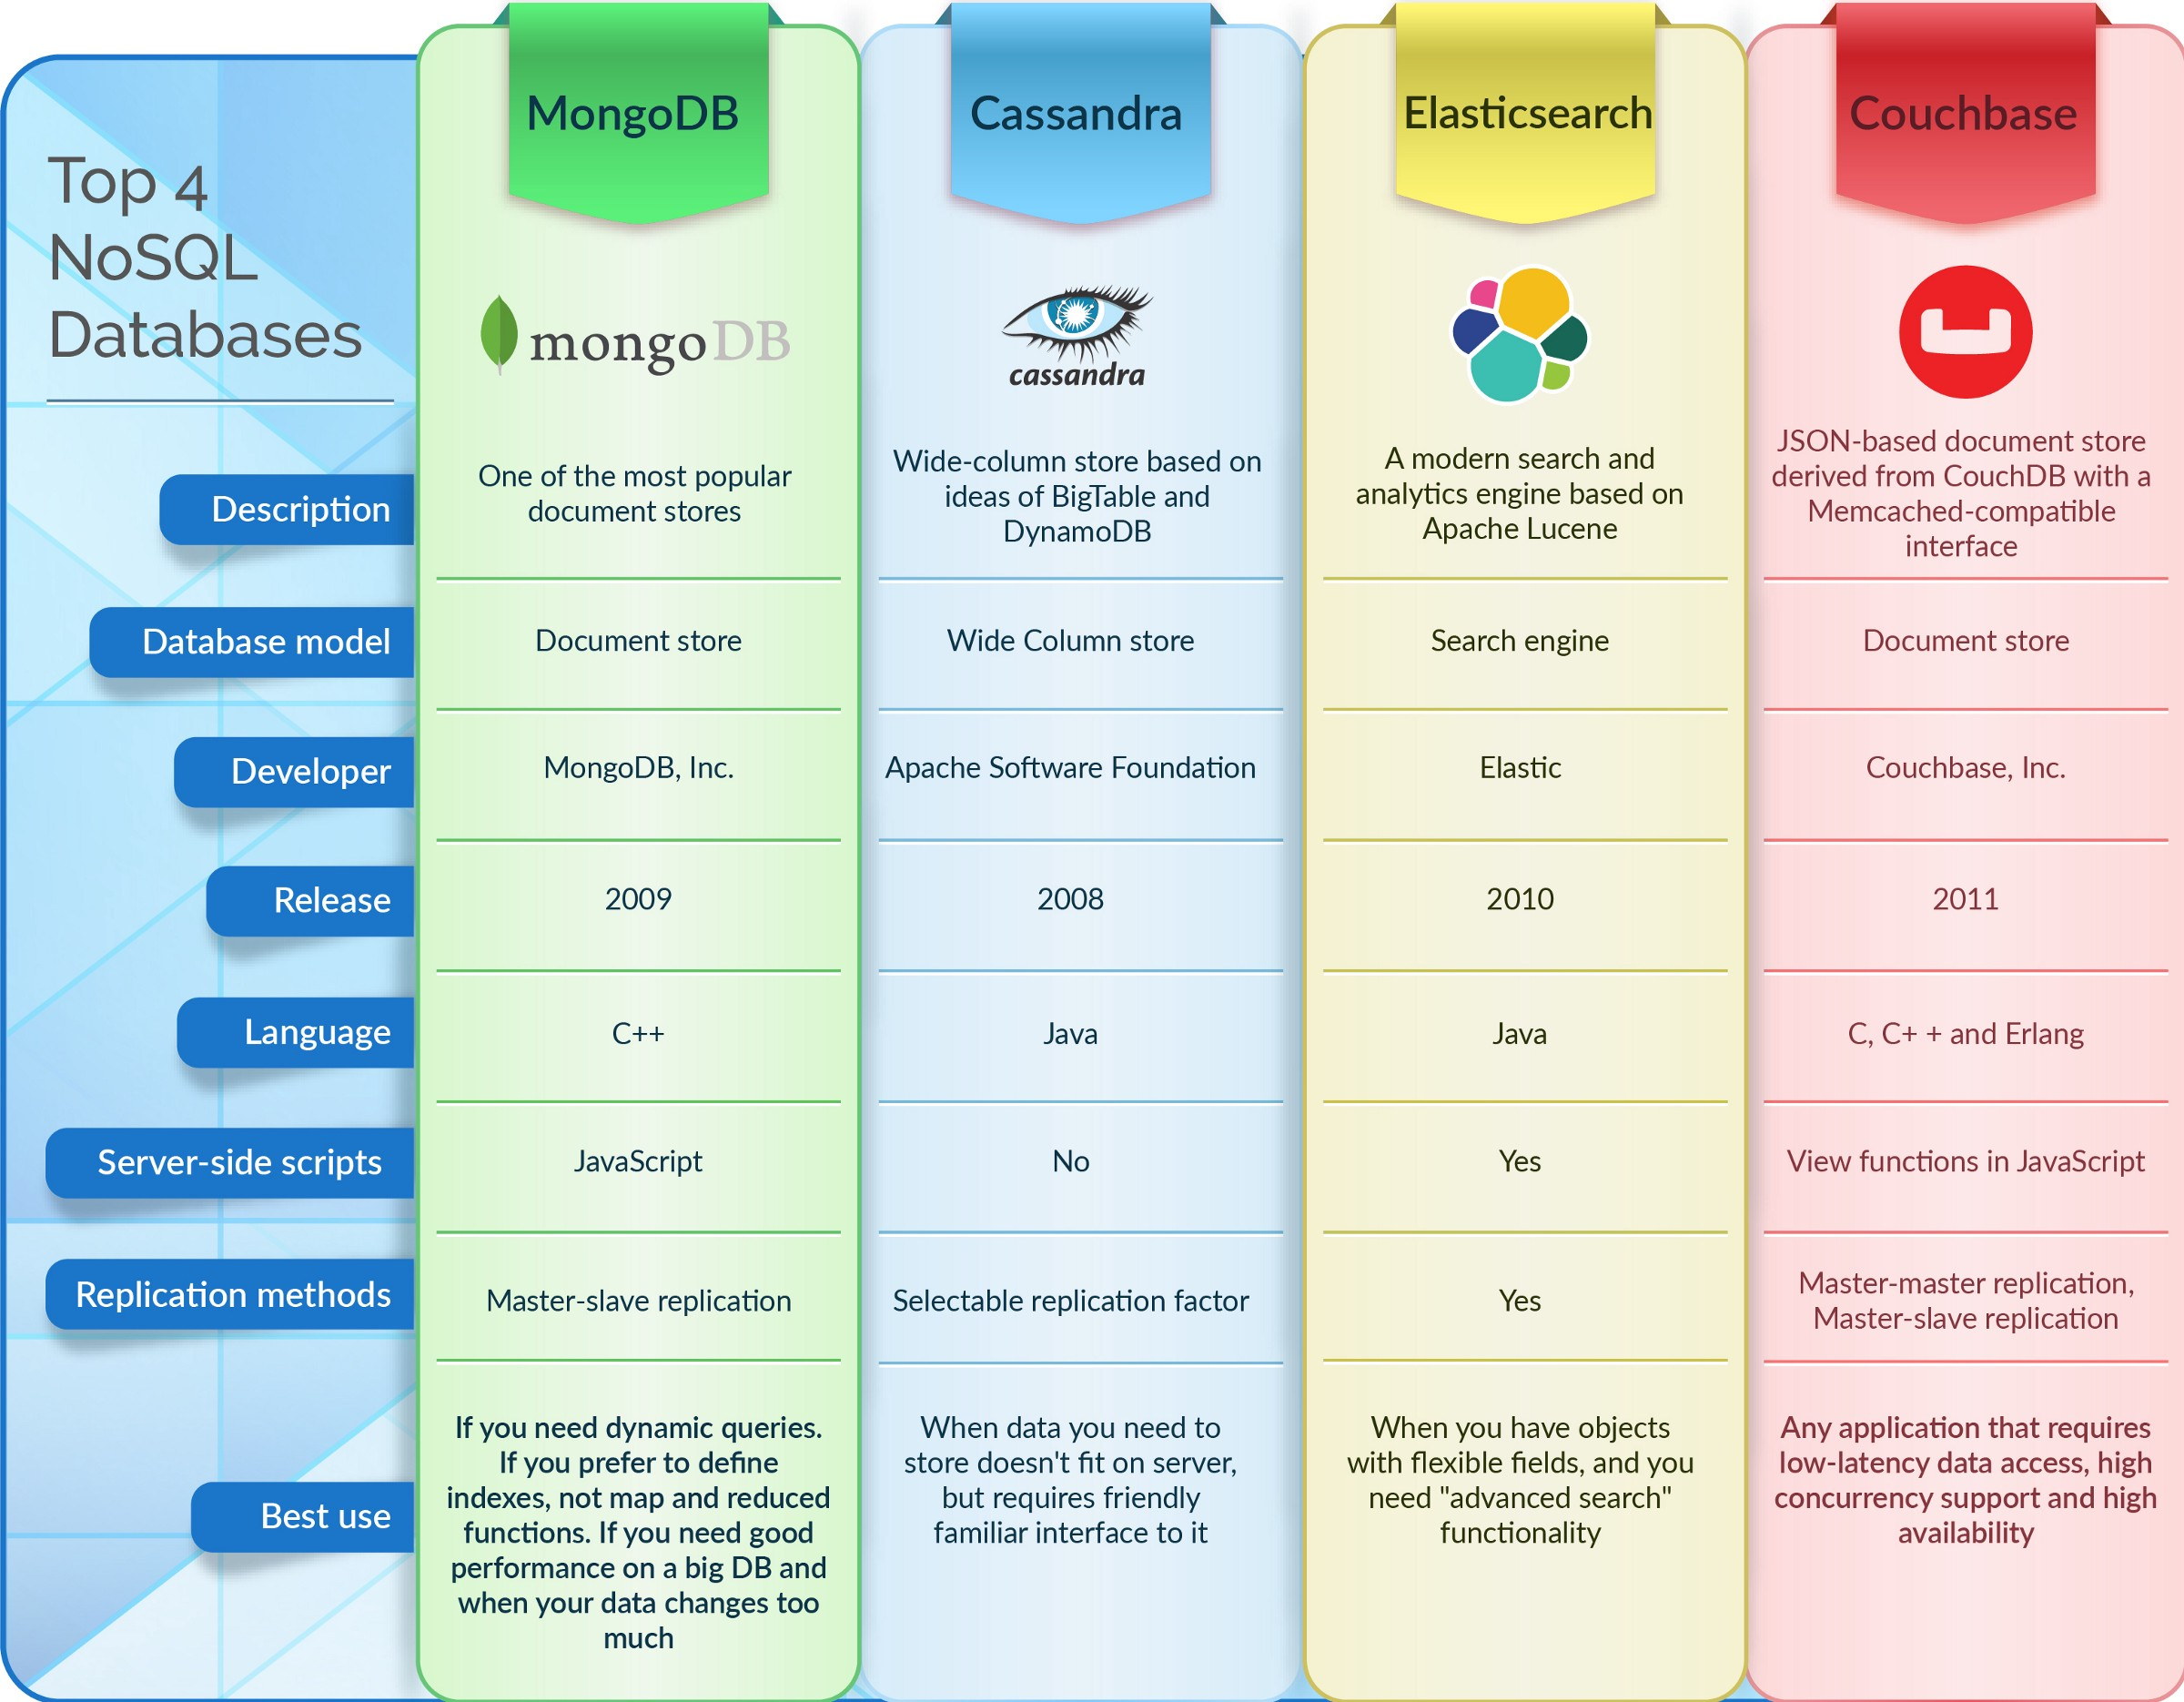 Top 4 NoSQL DataBases [Infographic] - By DashMagazine